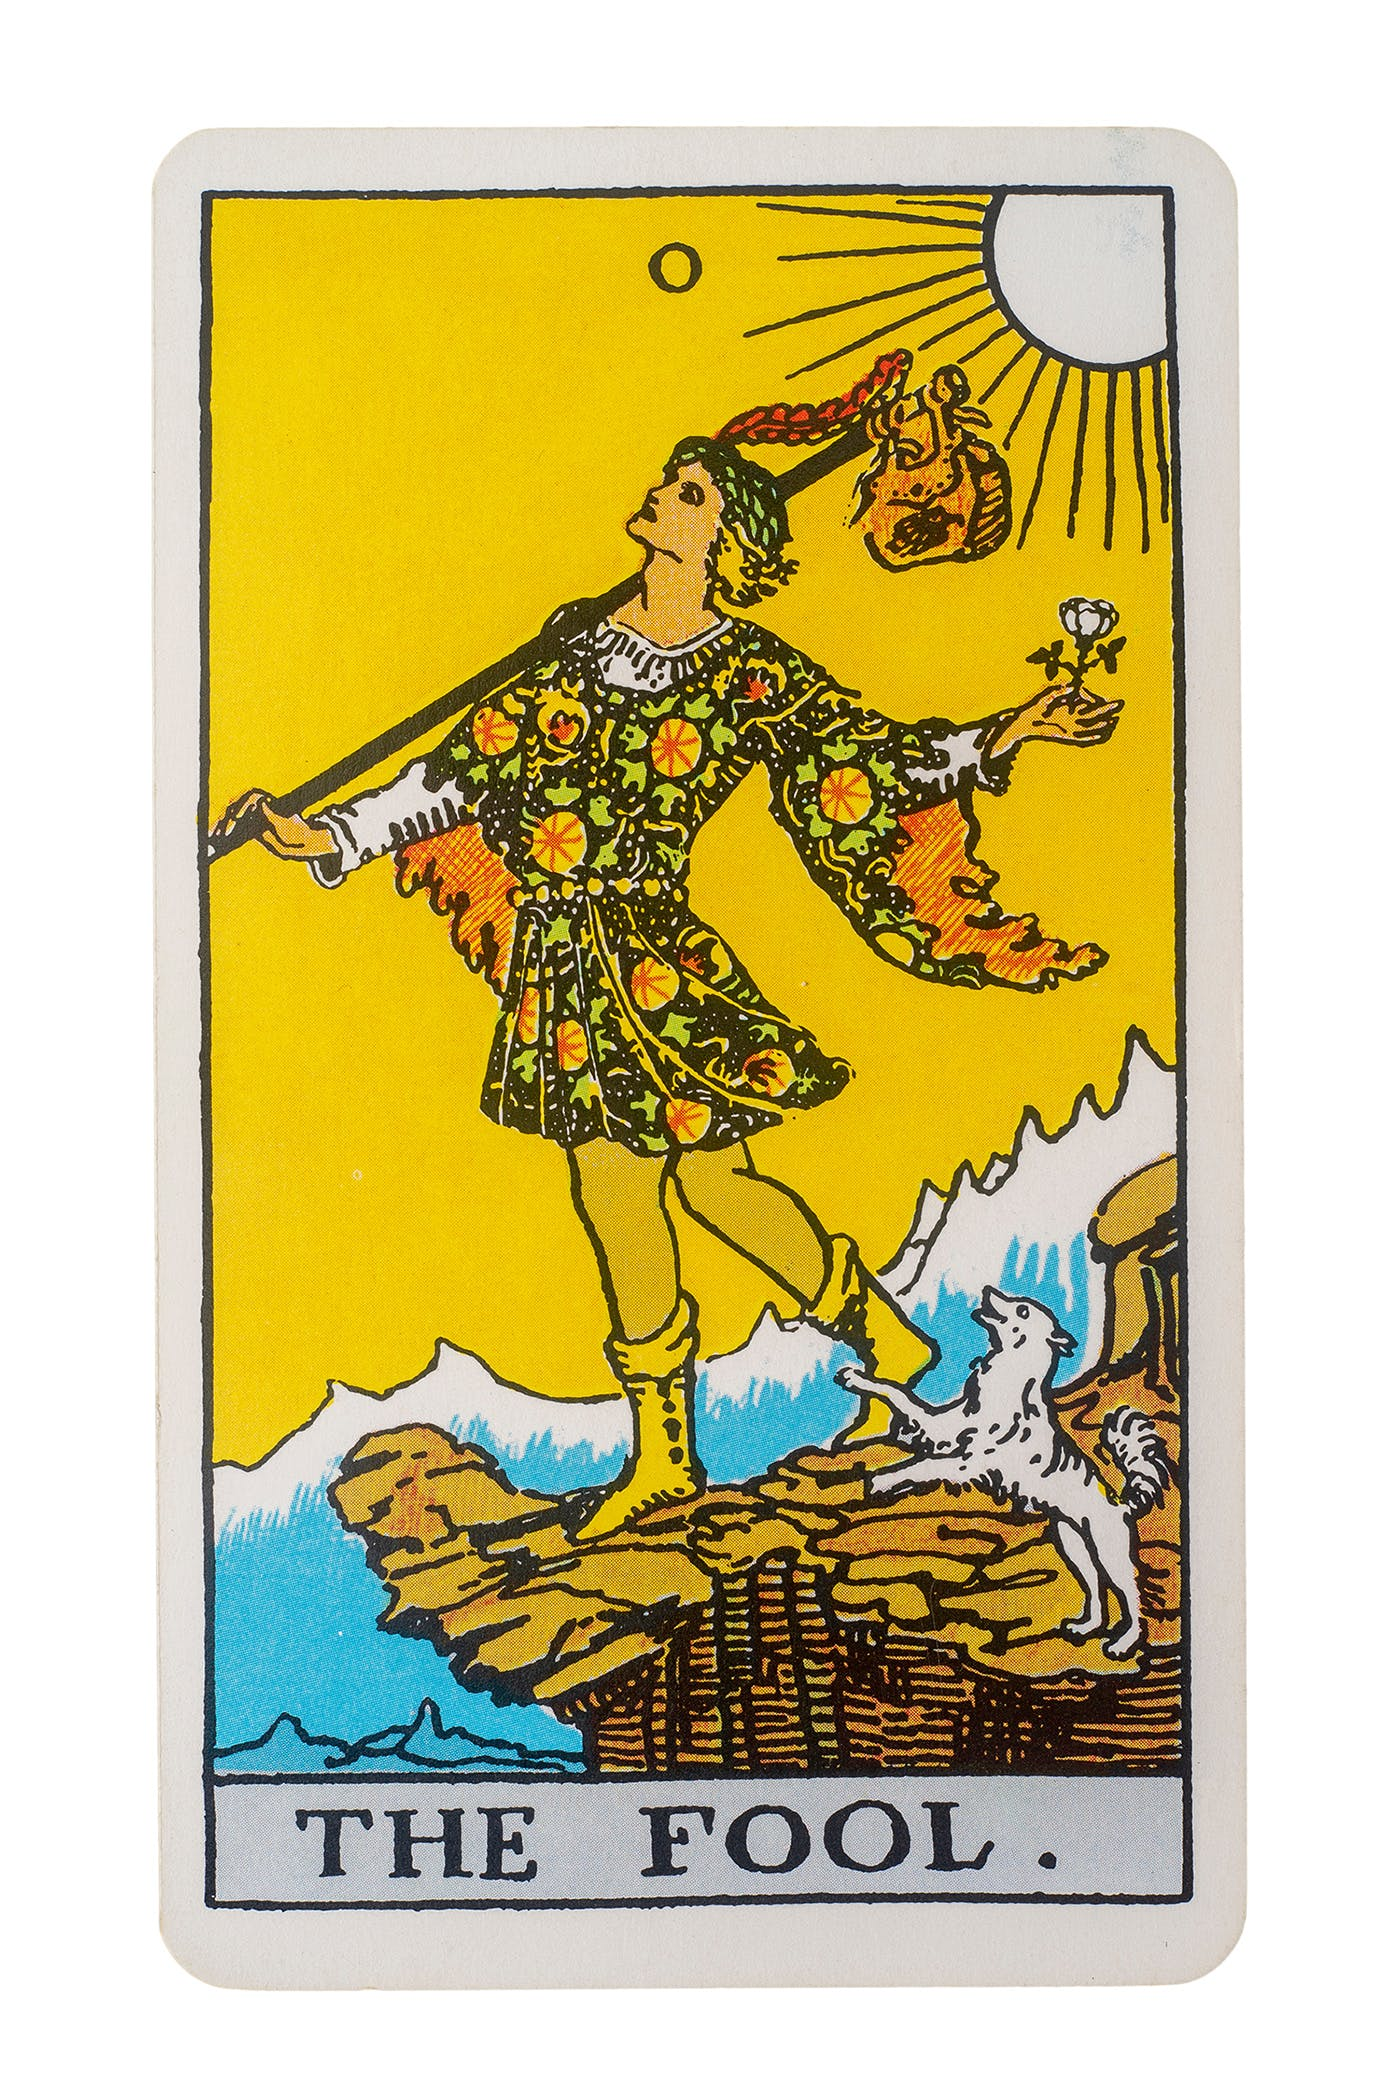 Image of The Fool in the Rider-waite deck. A man standing on the end of a cliff, not paying attention to where he is walking.